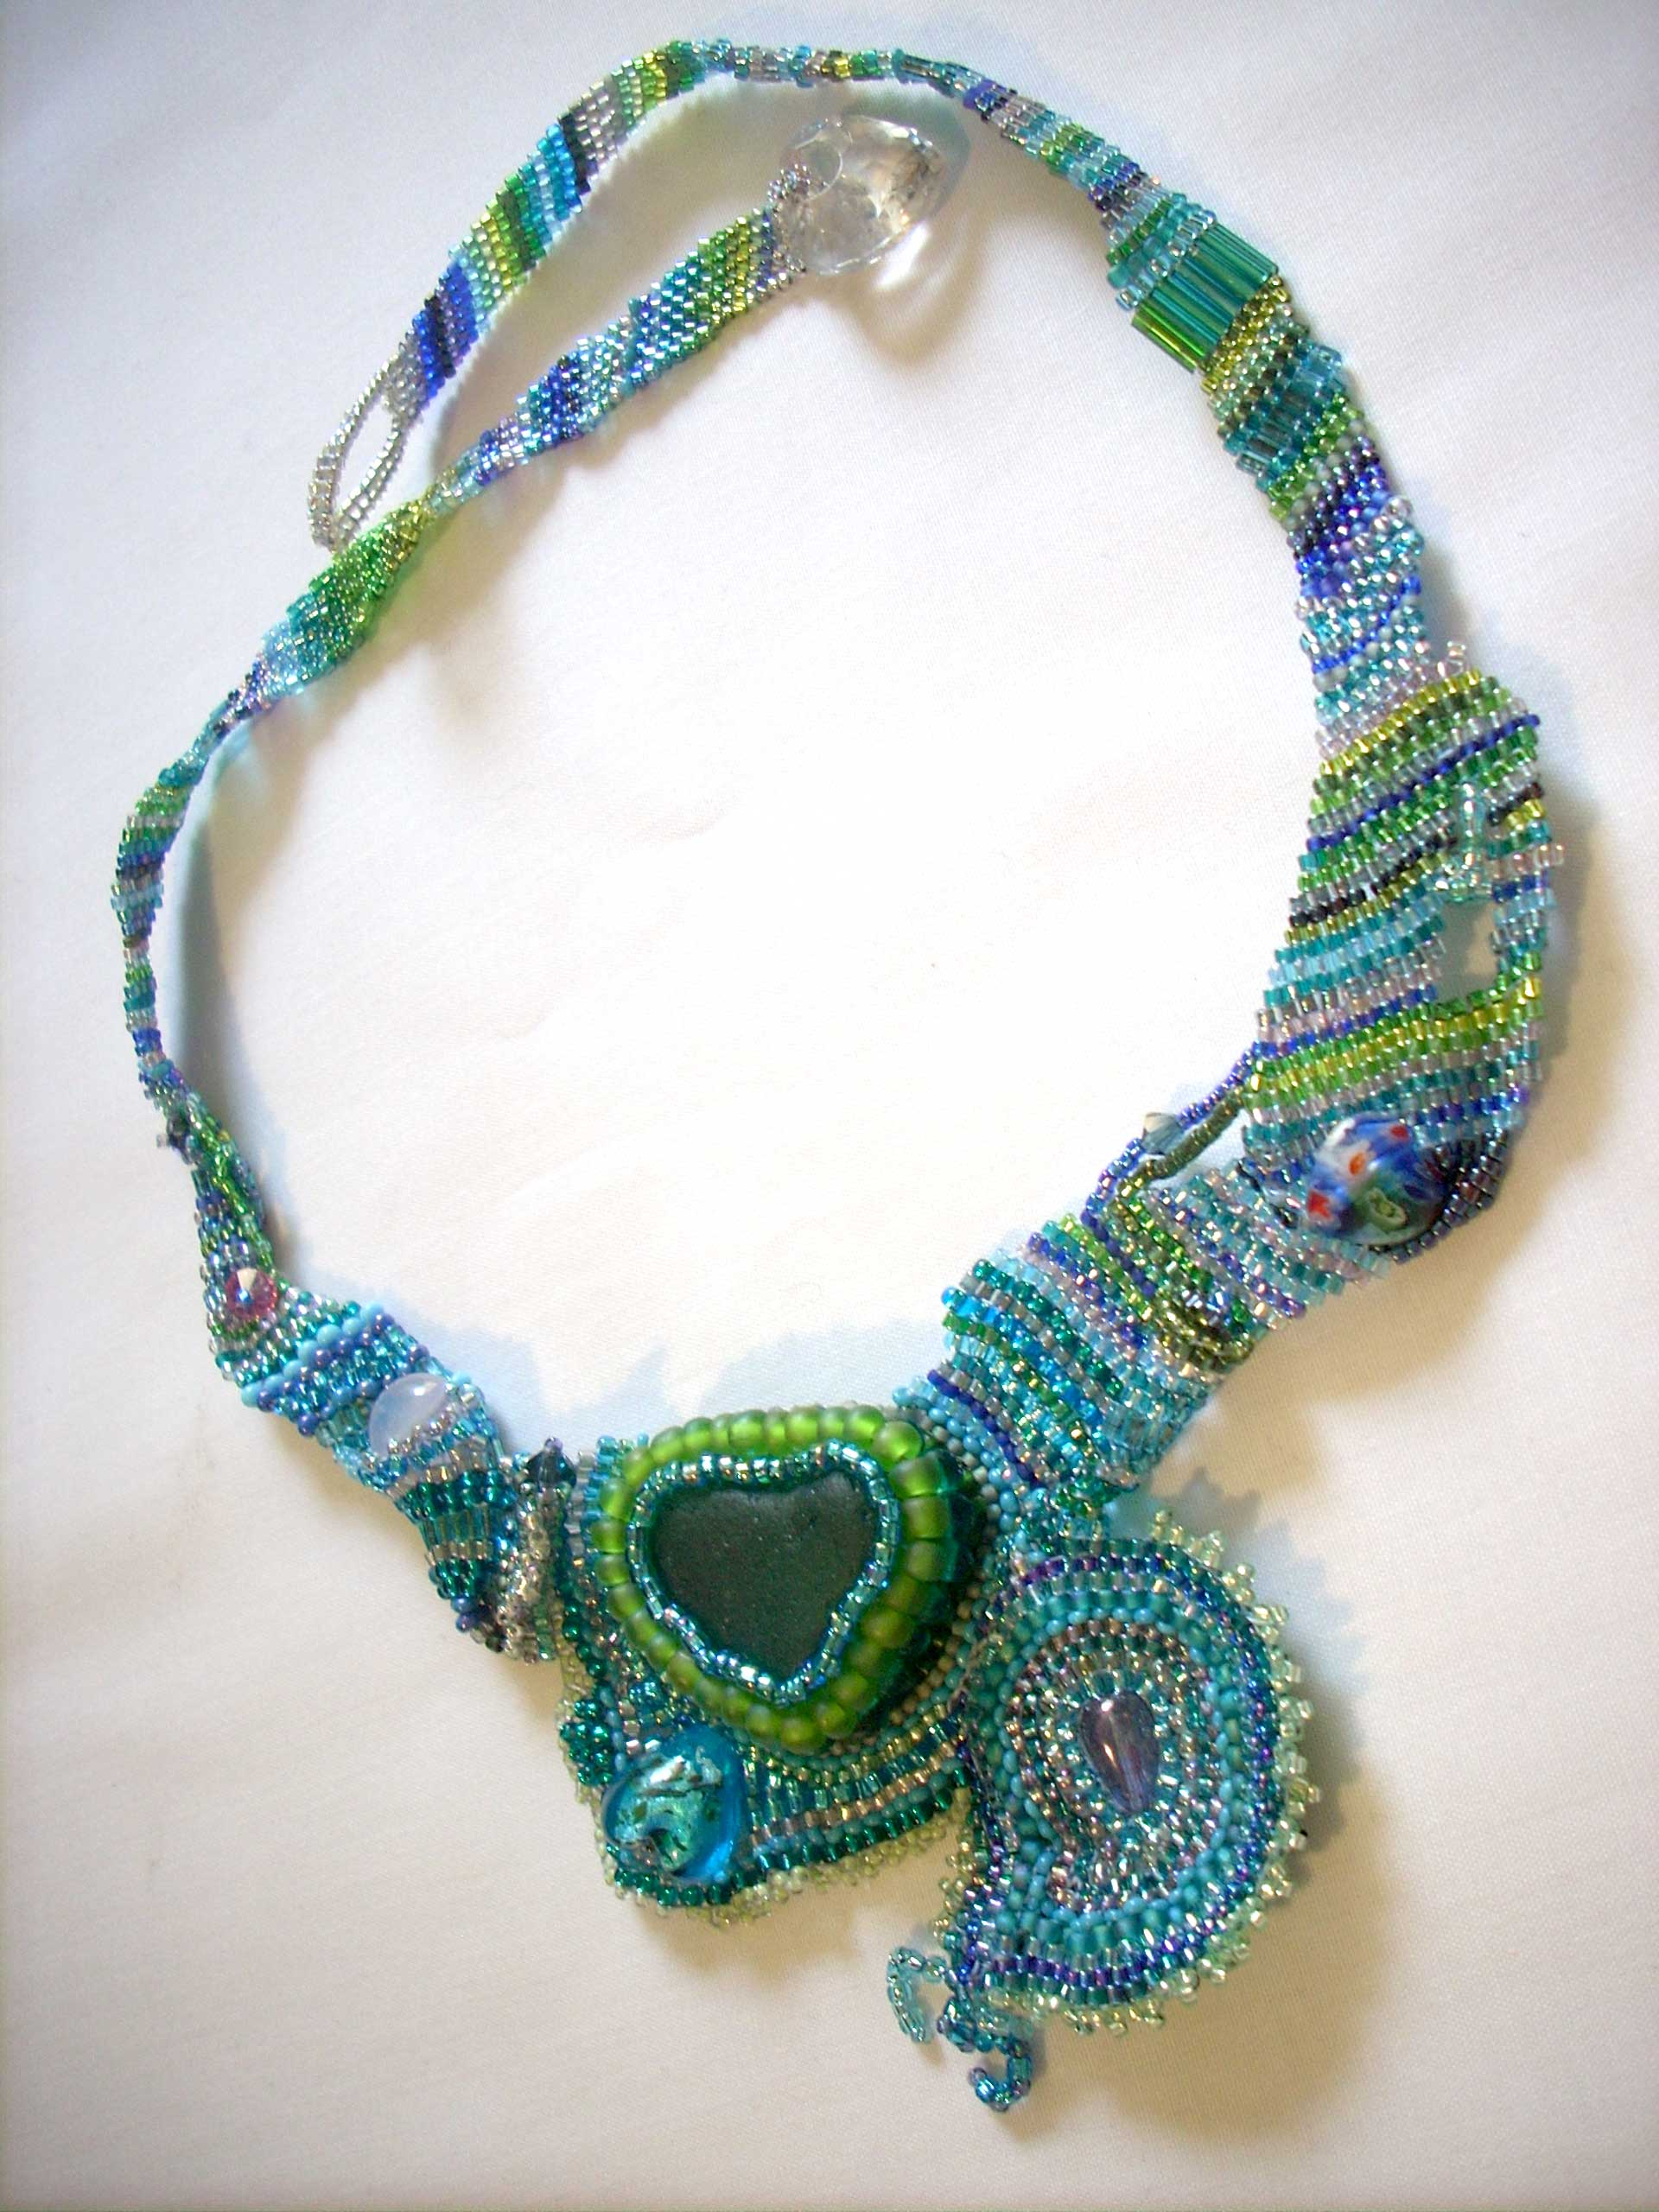 baroque handmade necklace with deep green heart of sea glass surrounded by seed beads in greens and blues